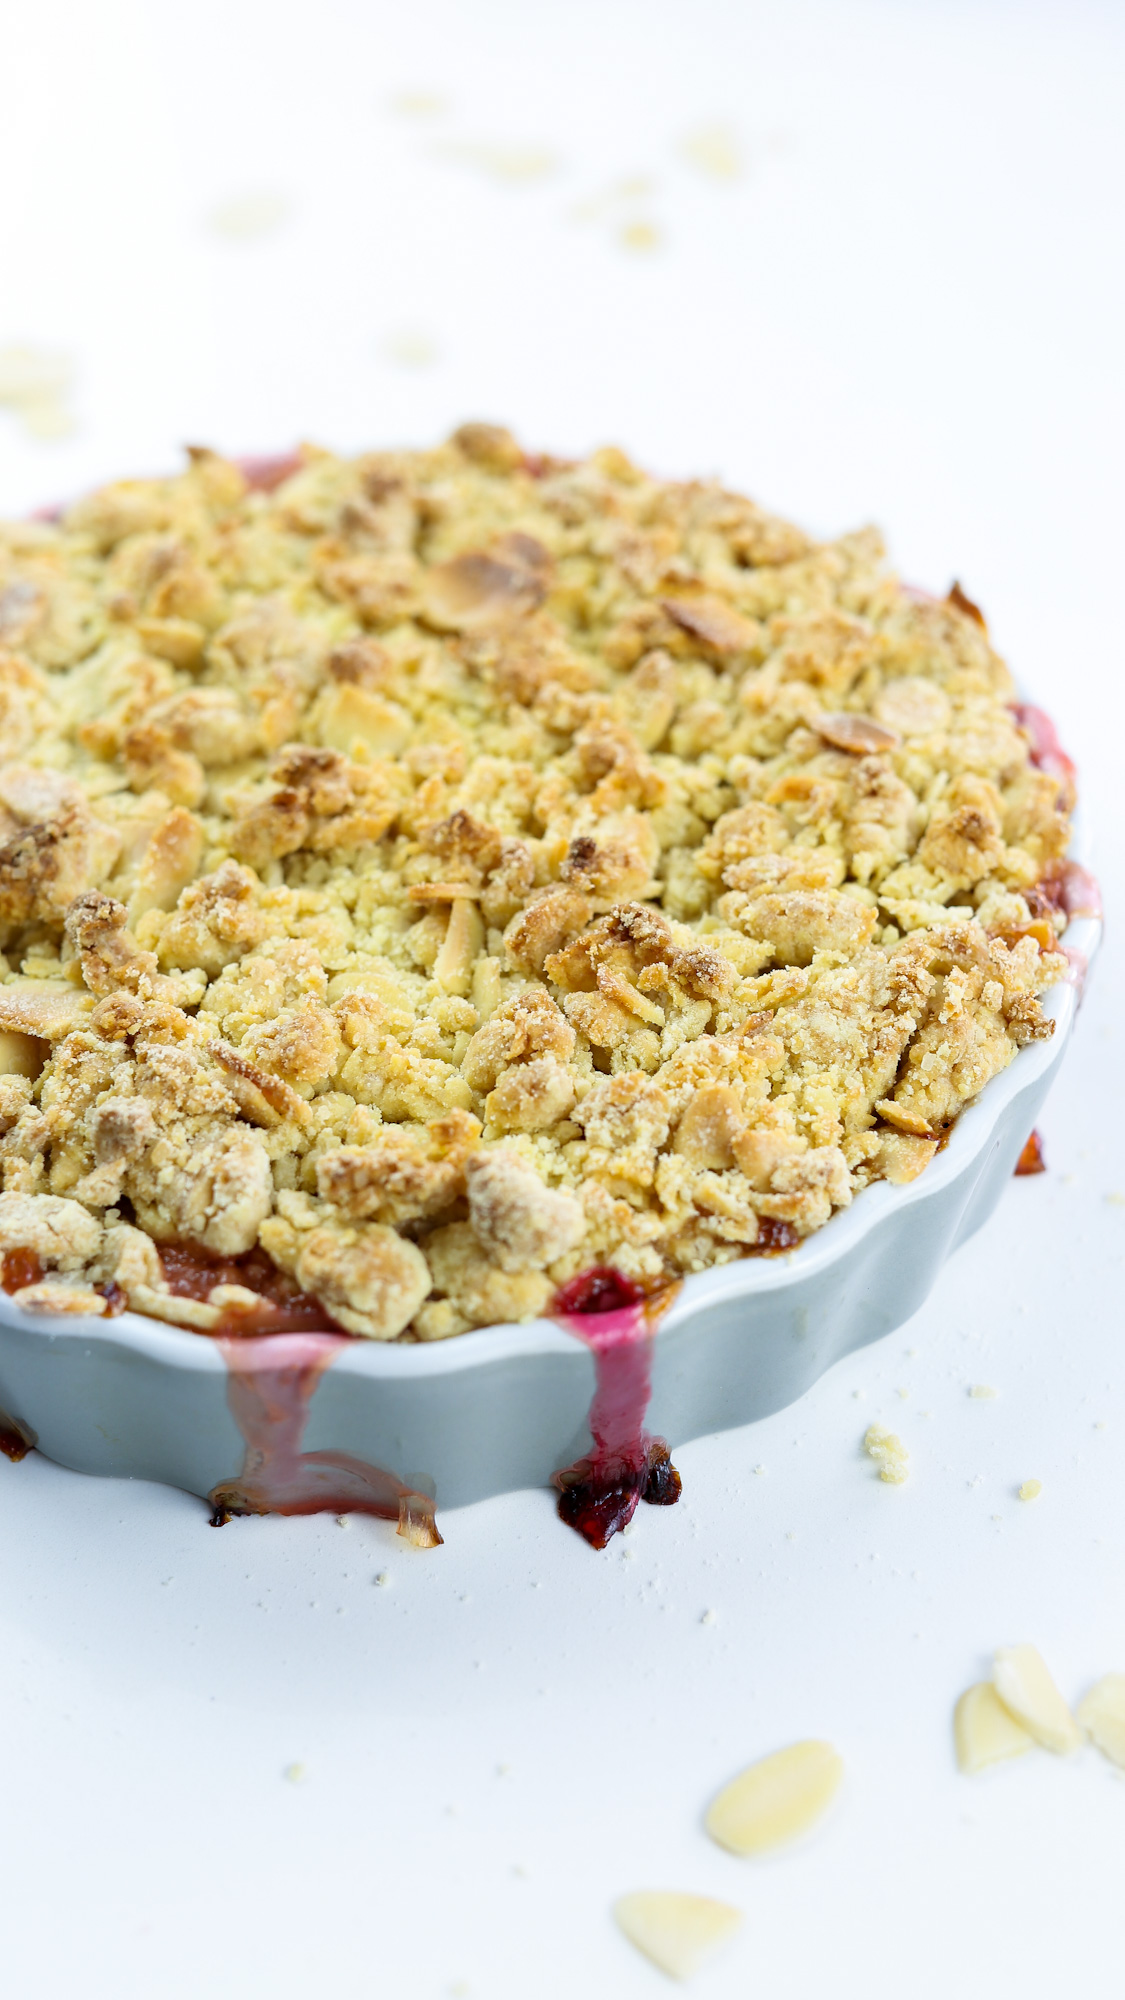 vegan Amaretto & Rhubarb crumble on a grey, round ceramic dish on a white surface with almond shavings